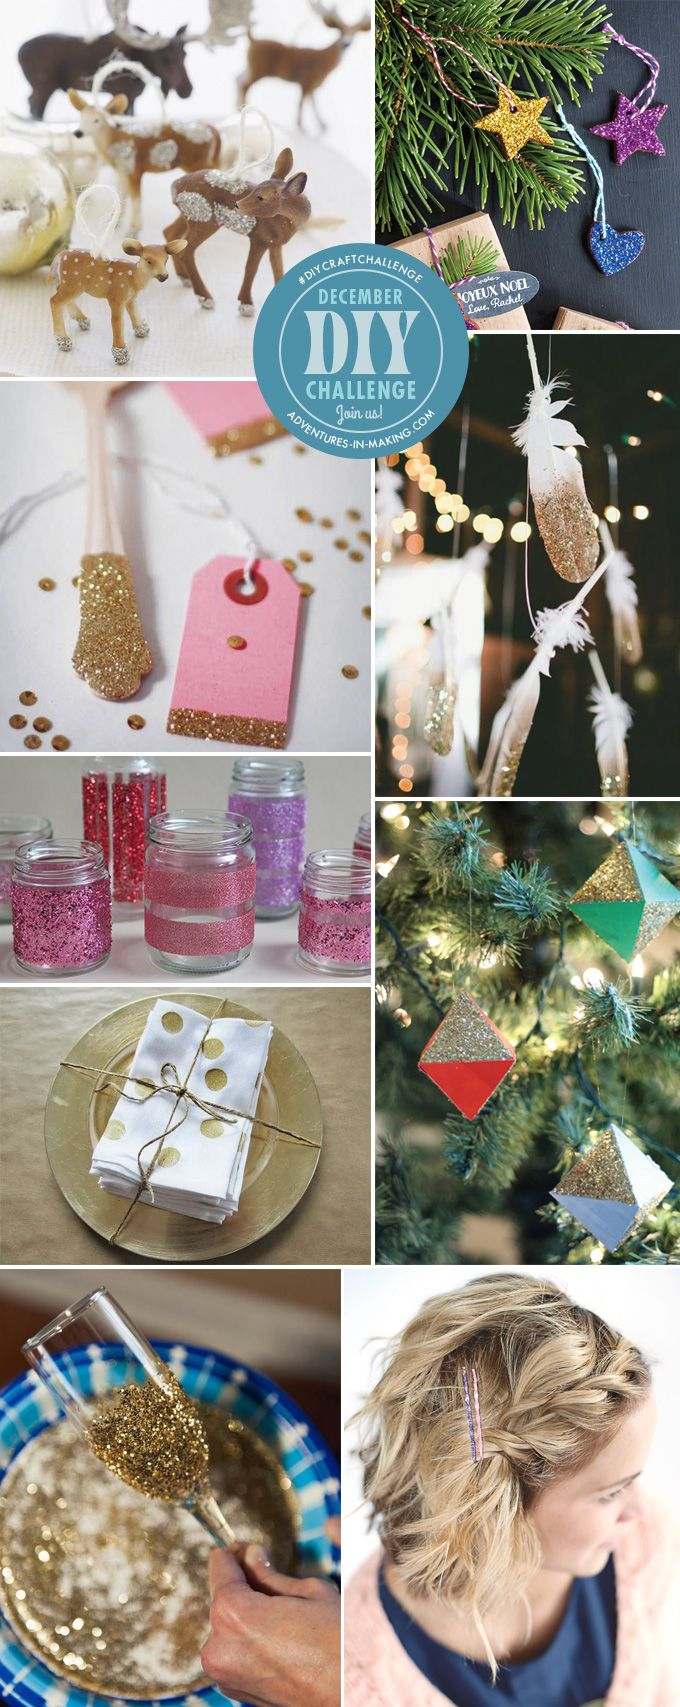 Join us for our December DIY CHALLENGE: The theme is Glitter! | http://adventures-in-making.com/diy-challenge-december-glitter/ #diycraftchallenge #glitter #craft